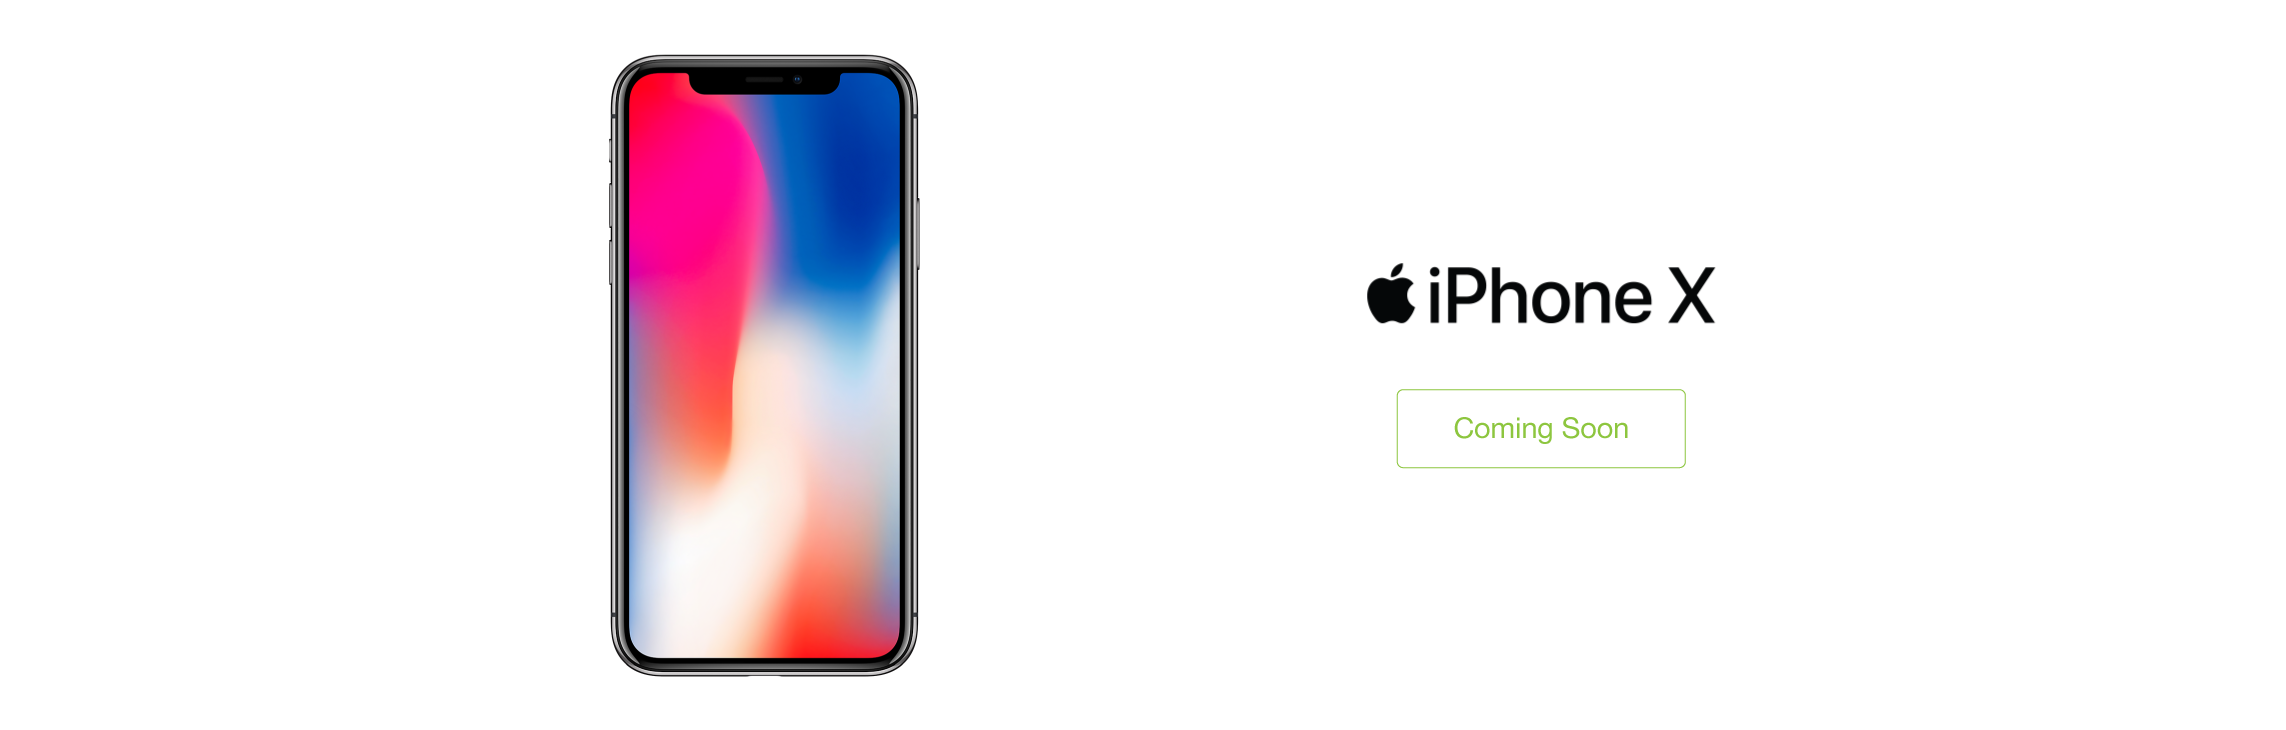 Apple iPhone X - Coming Soon